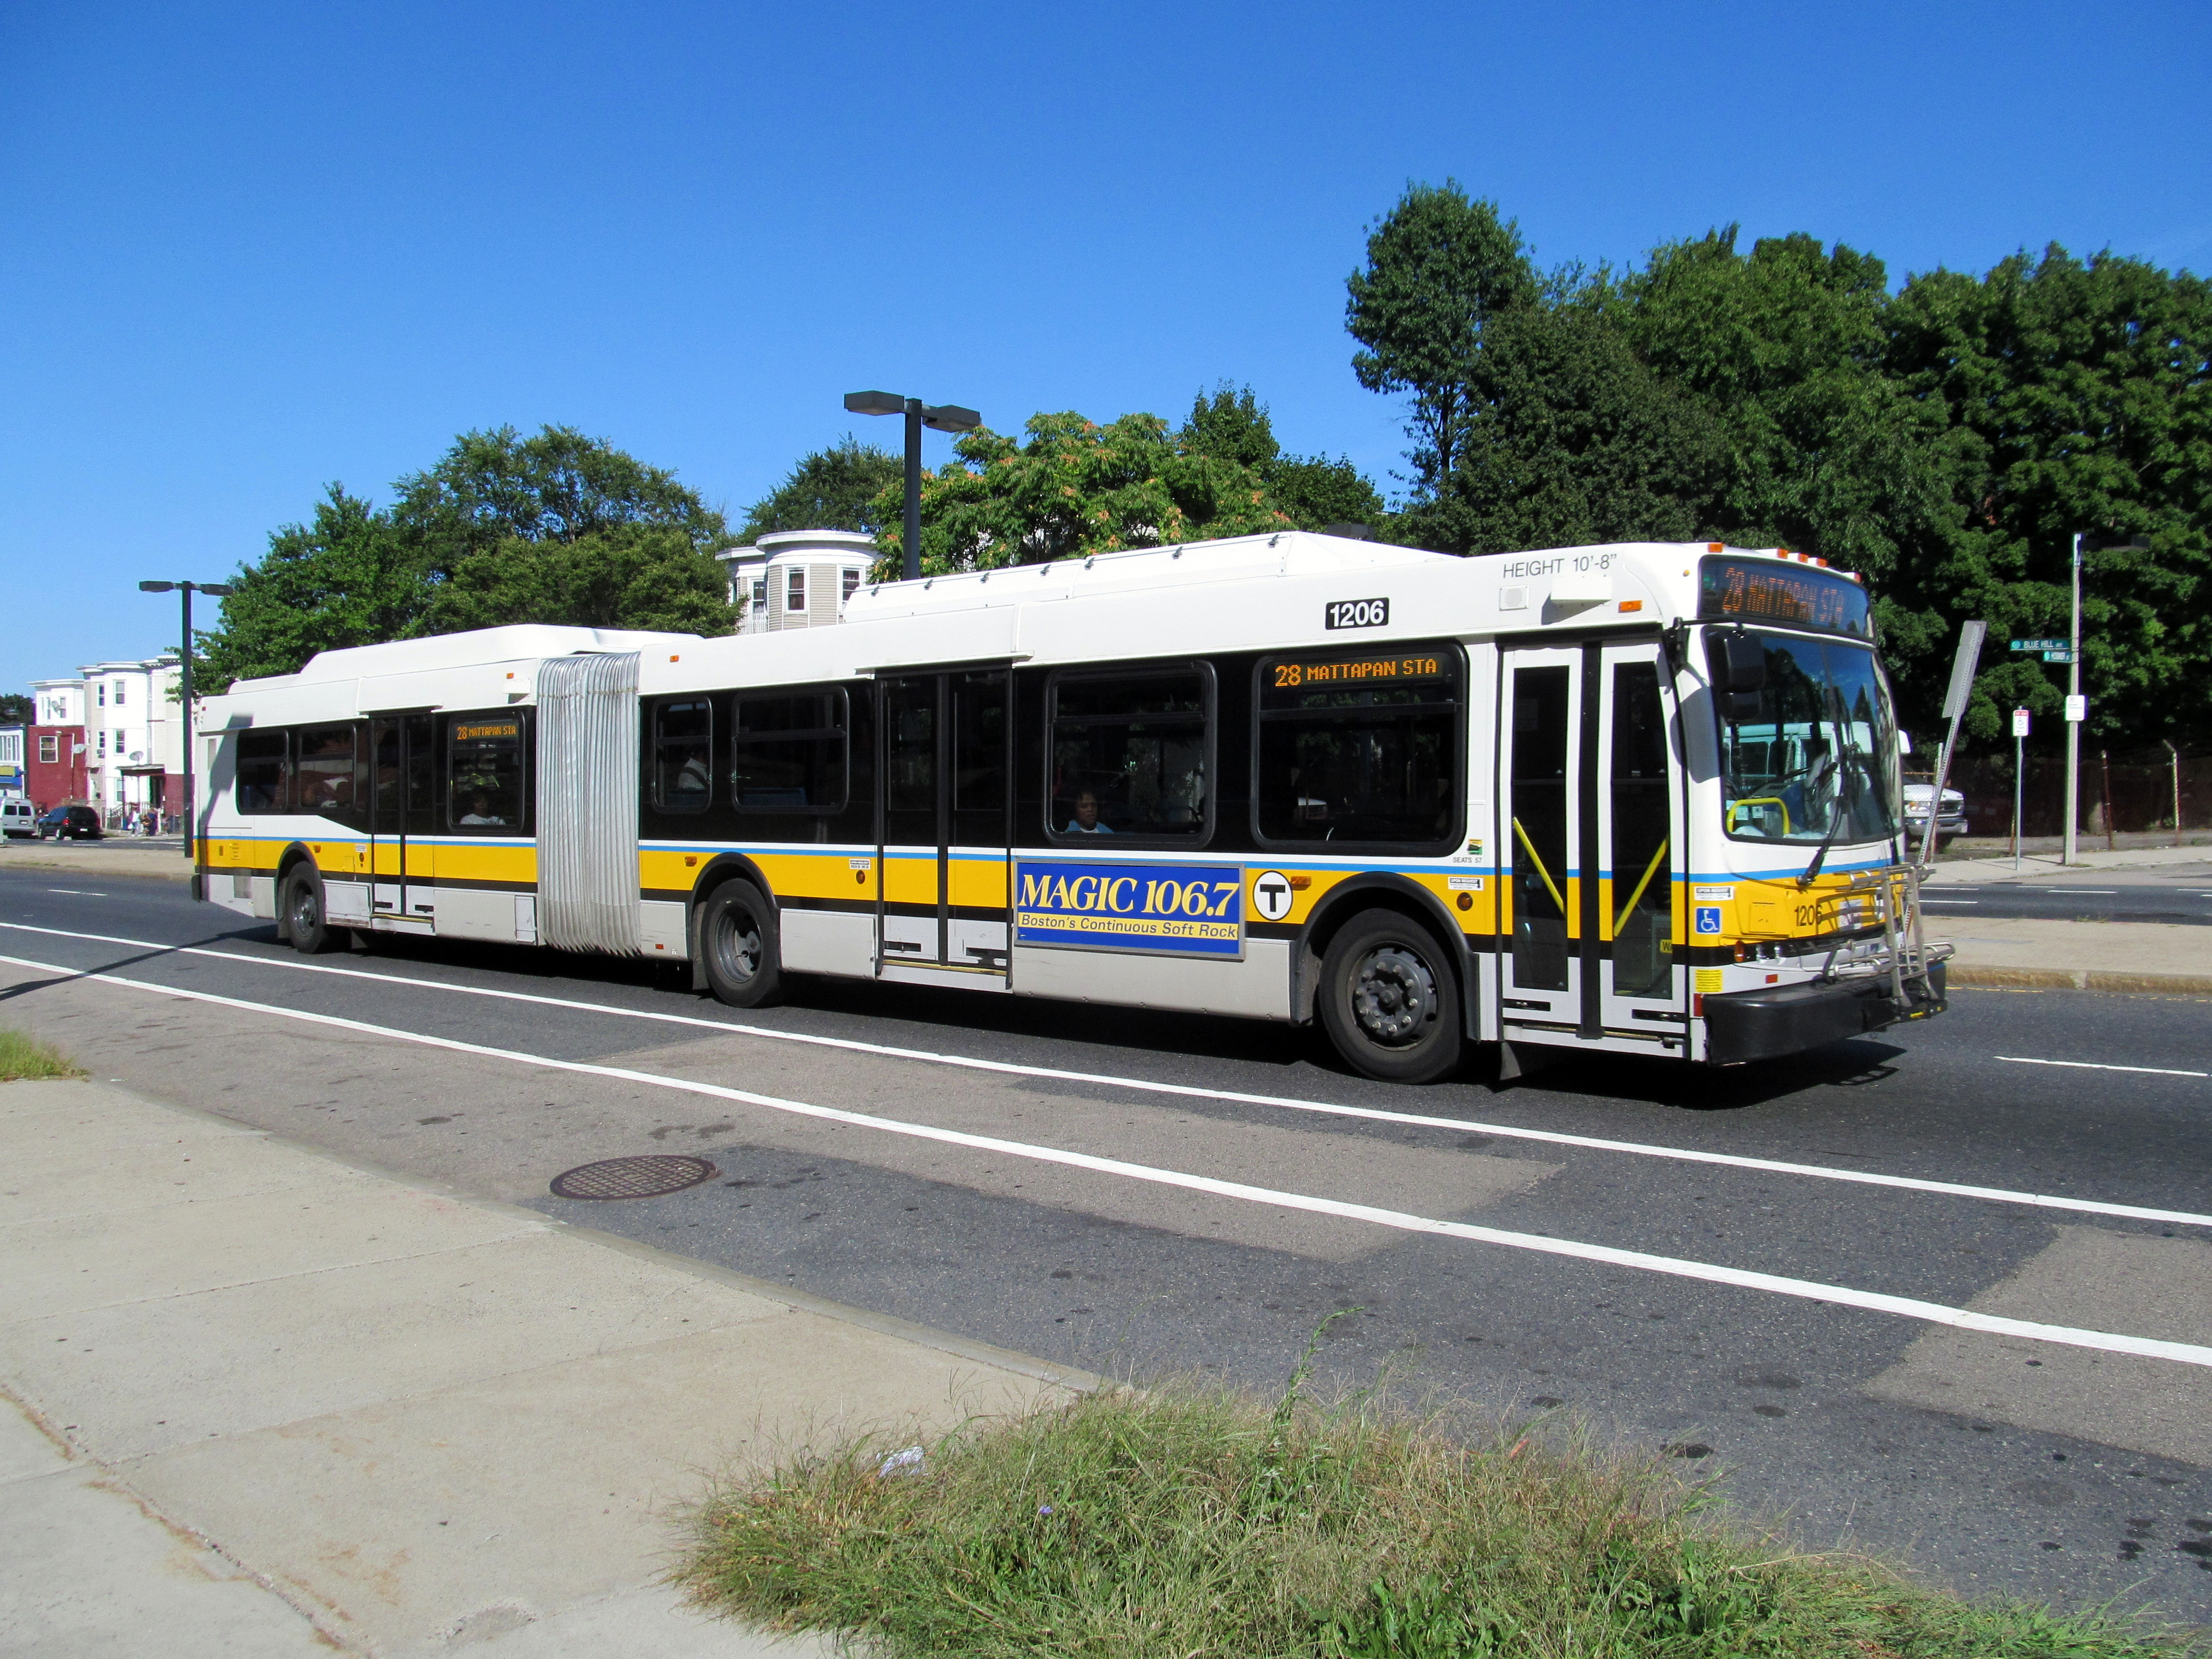 file:mbta route 28 bus on blue hill avenue, september 2012